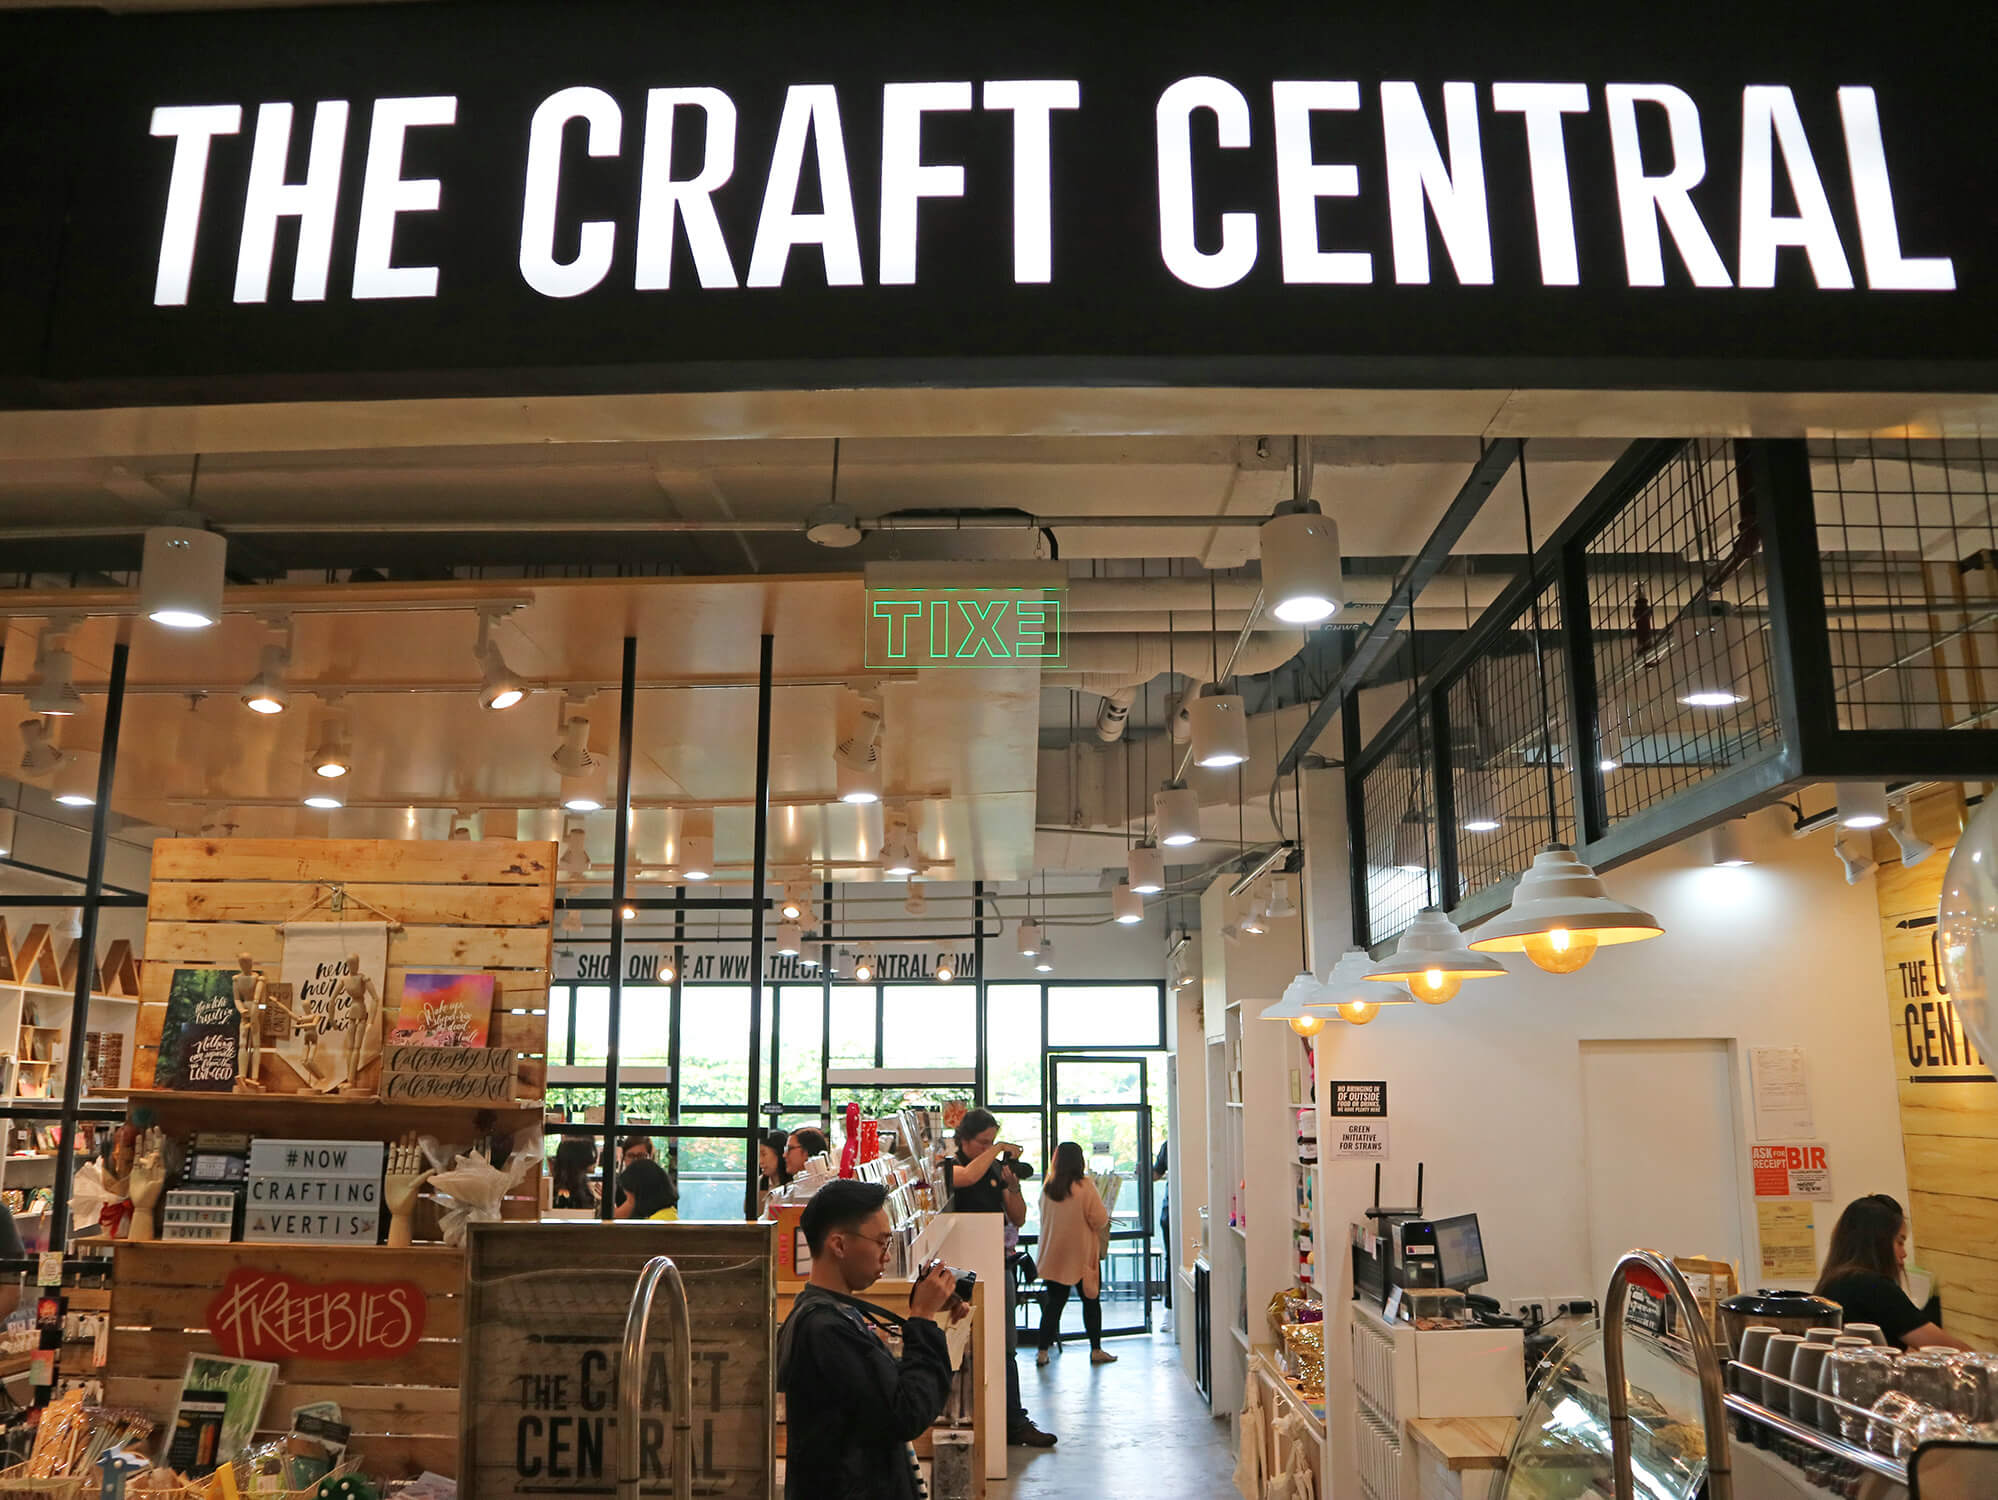 My Top 10 Finds at The Craft Central - Hungry Travel Duo